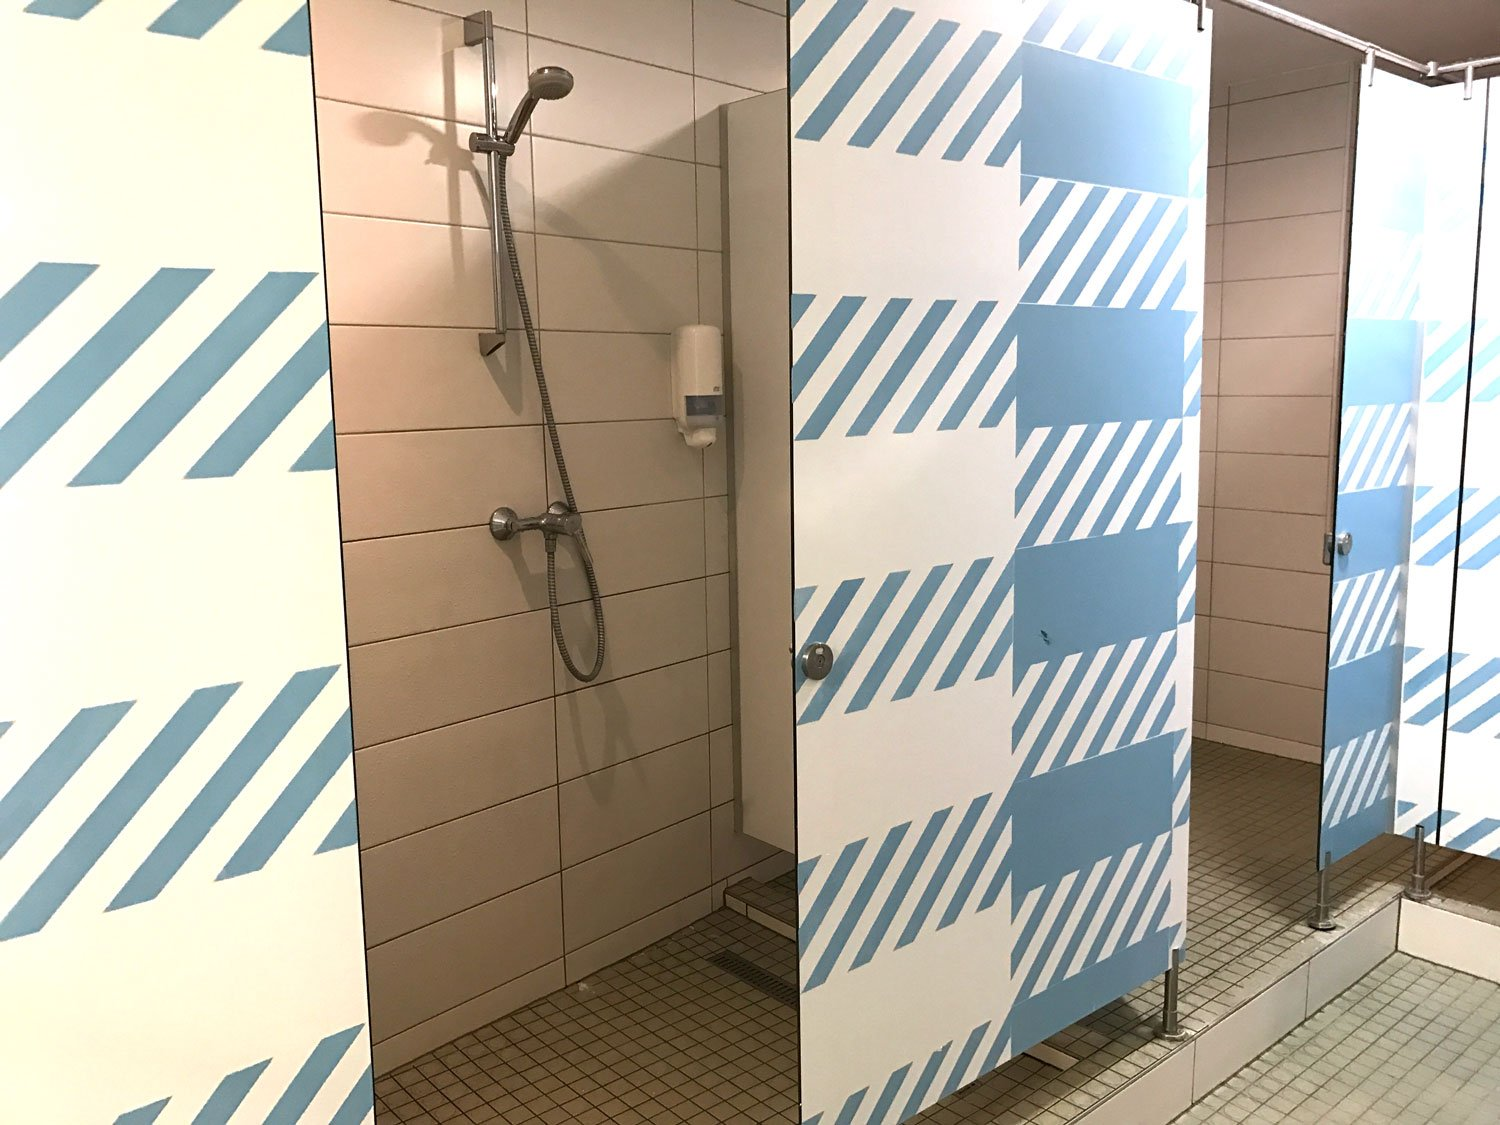 budapest maverick lodge hostel shower